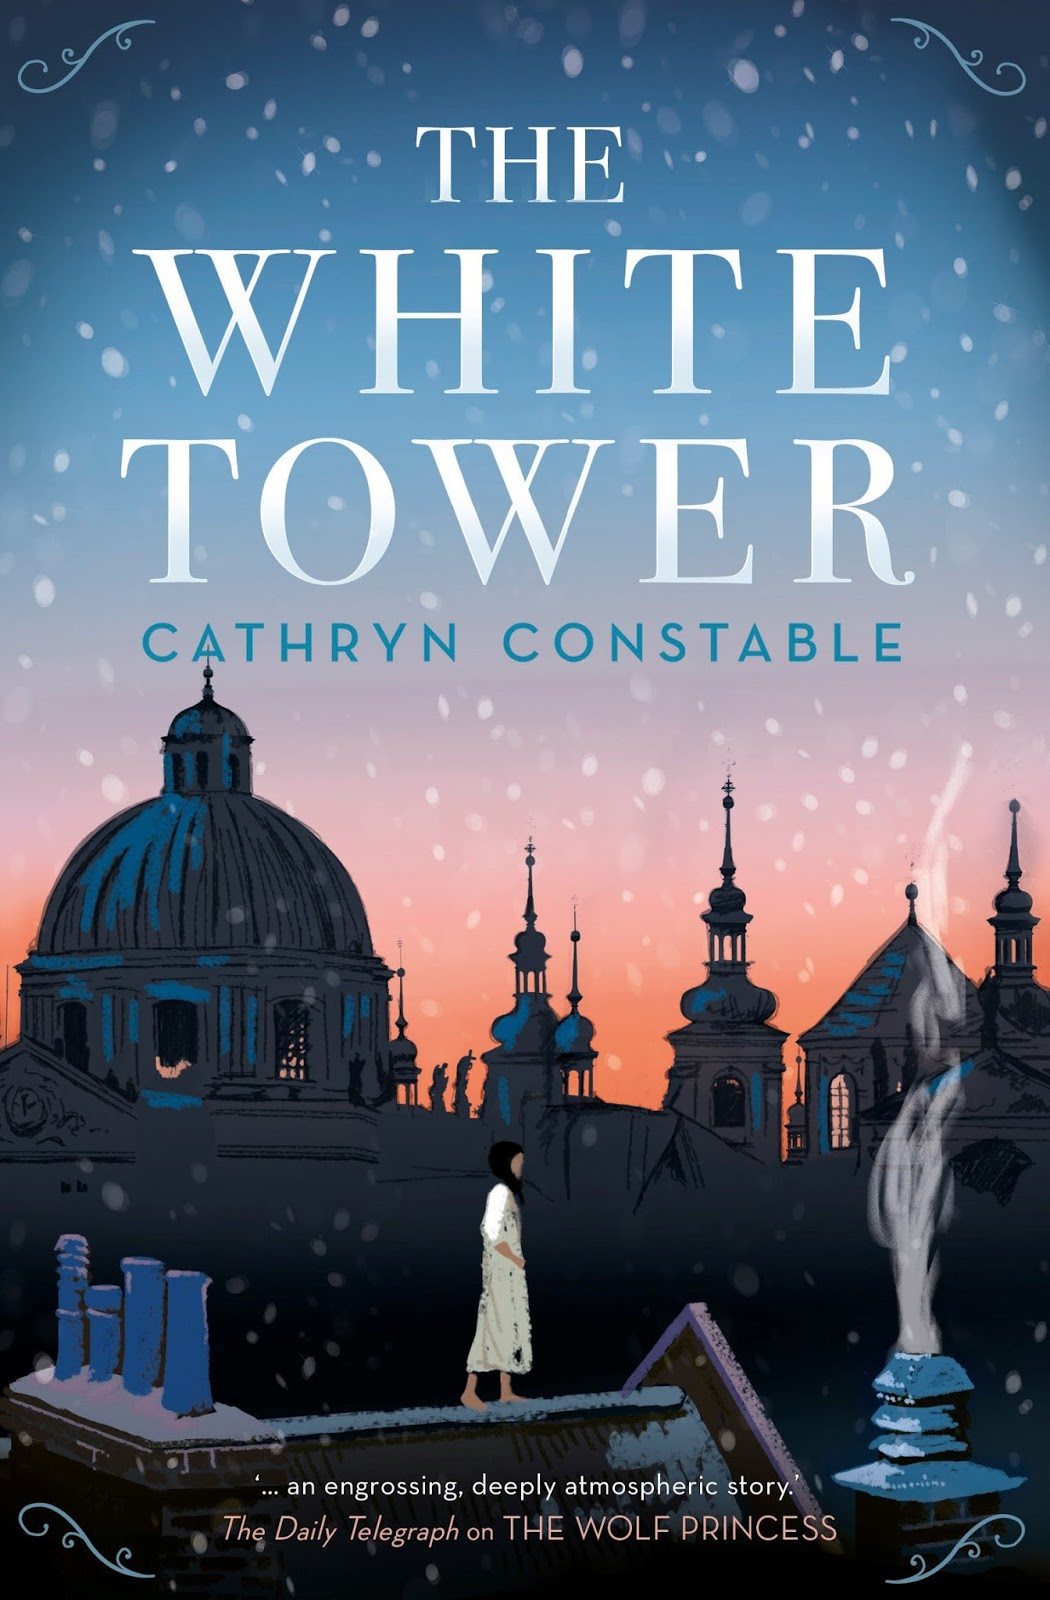 Cathryn Constable  The White Tower  Published By Chicken House; 1 Edition  (5 Jan 2017) Check Out Book Review Here